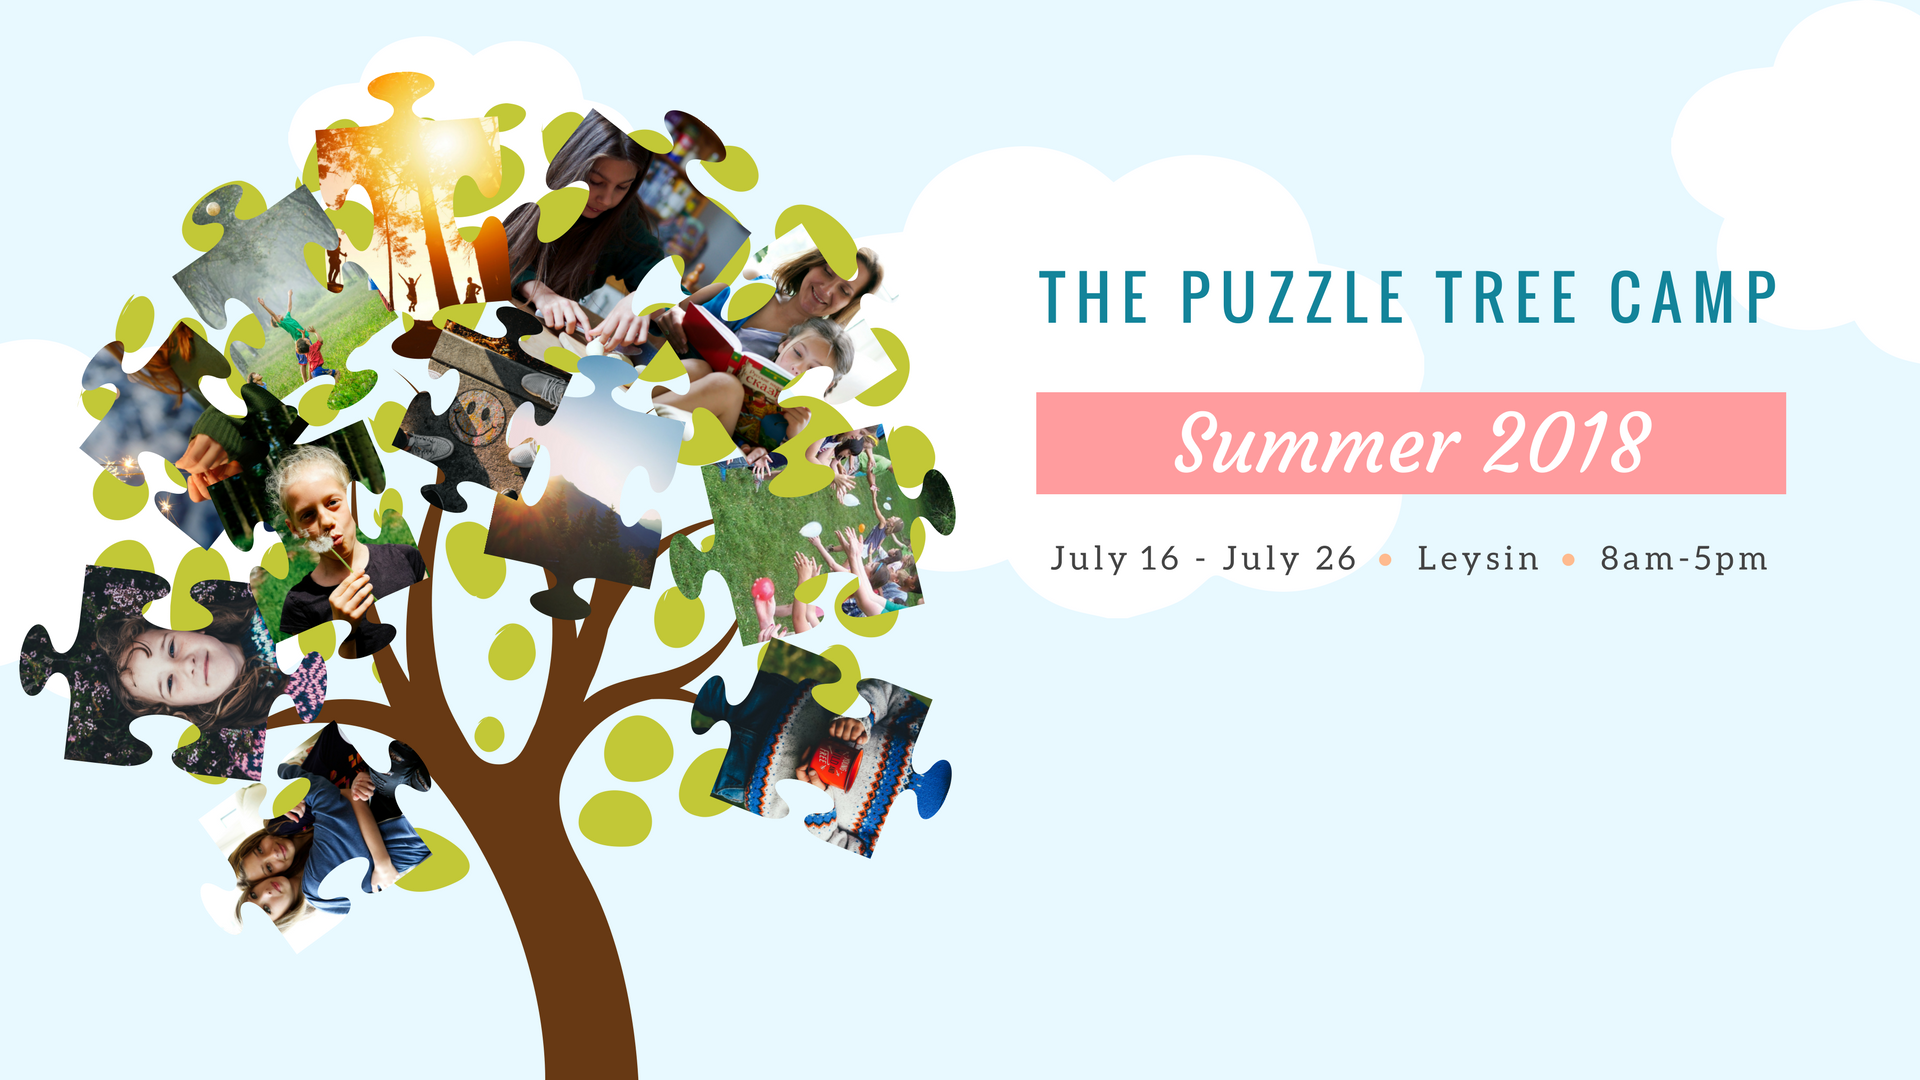 The Puzzle Tree Summer Camp - Switzerland - Early application - Ages 7 to 16 y/o